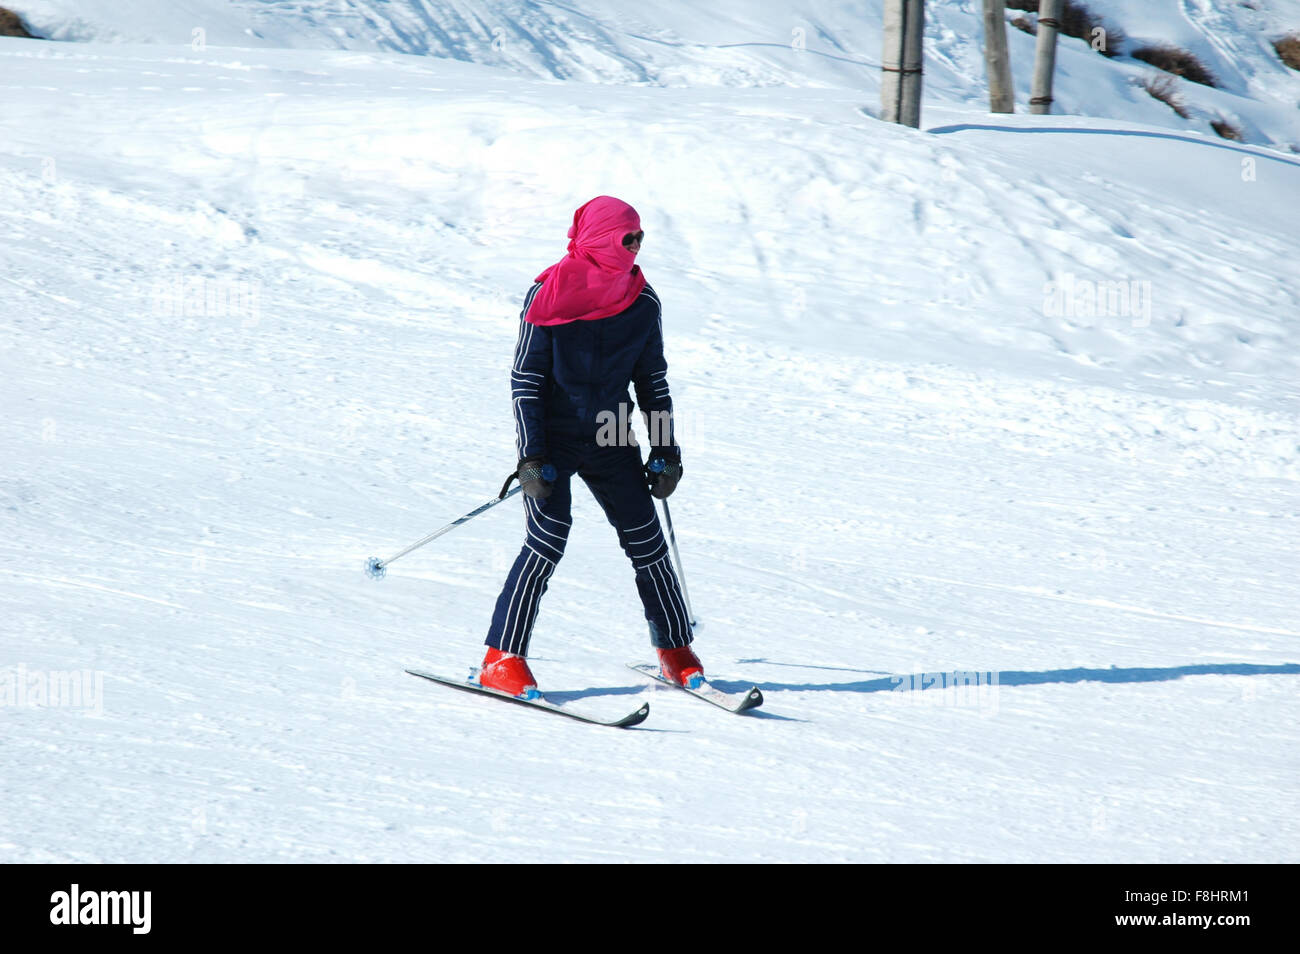 Skier on the snowy slope in winter - Stock Image